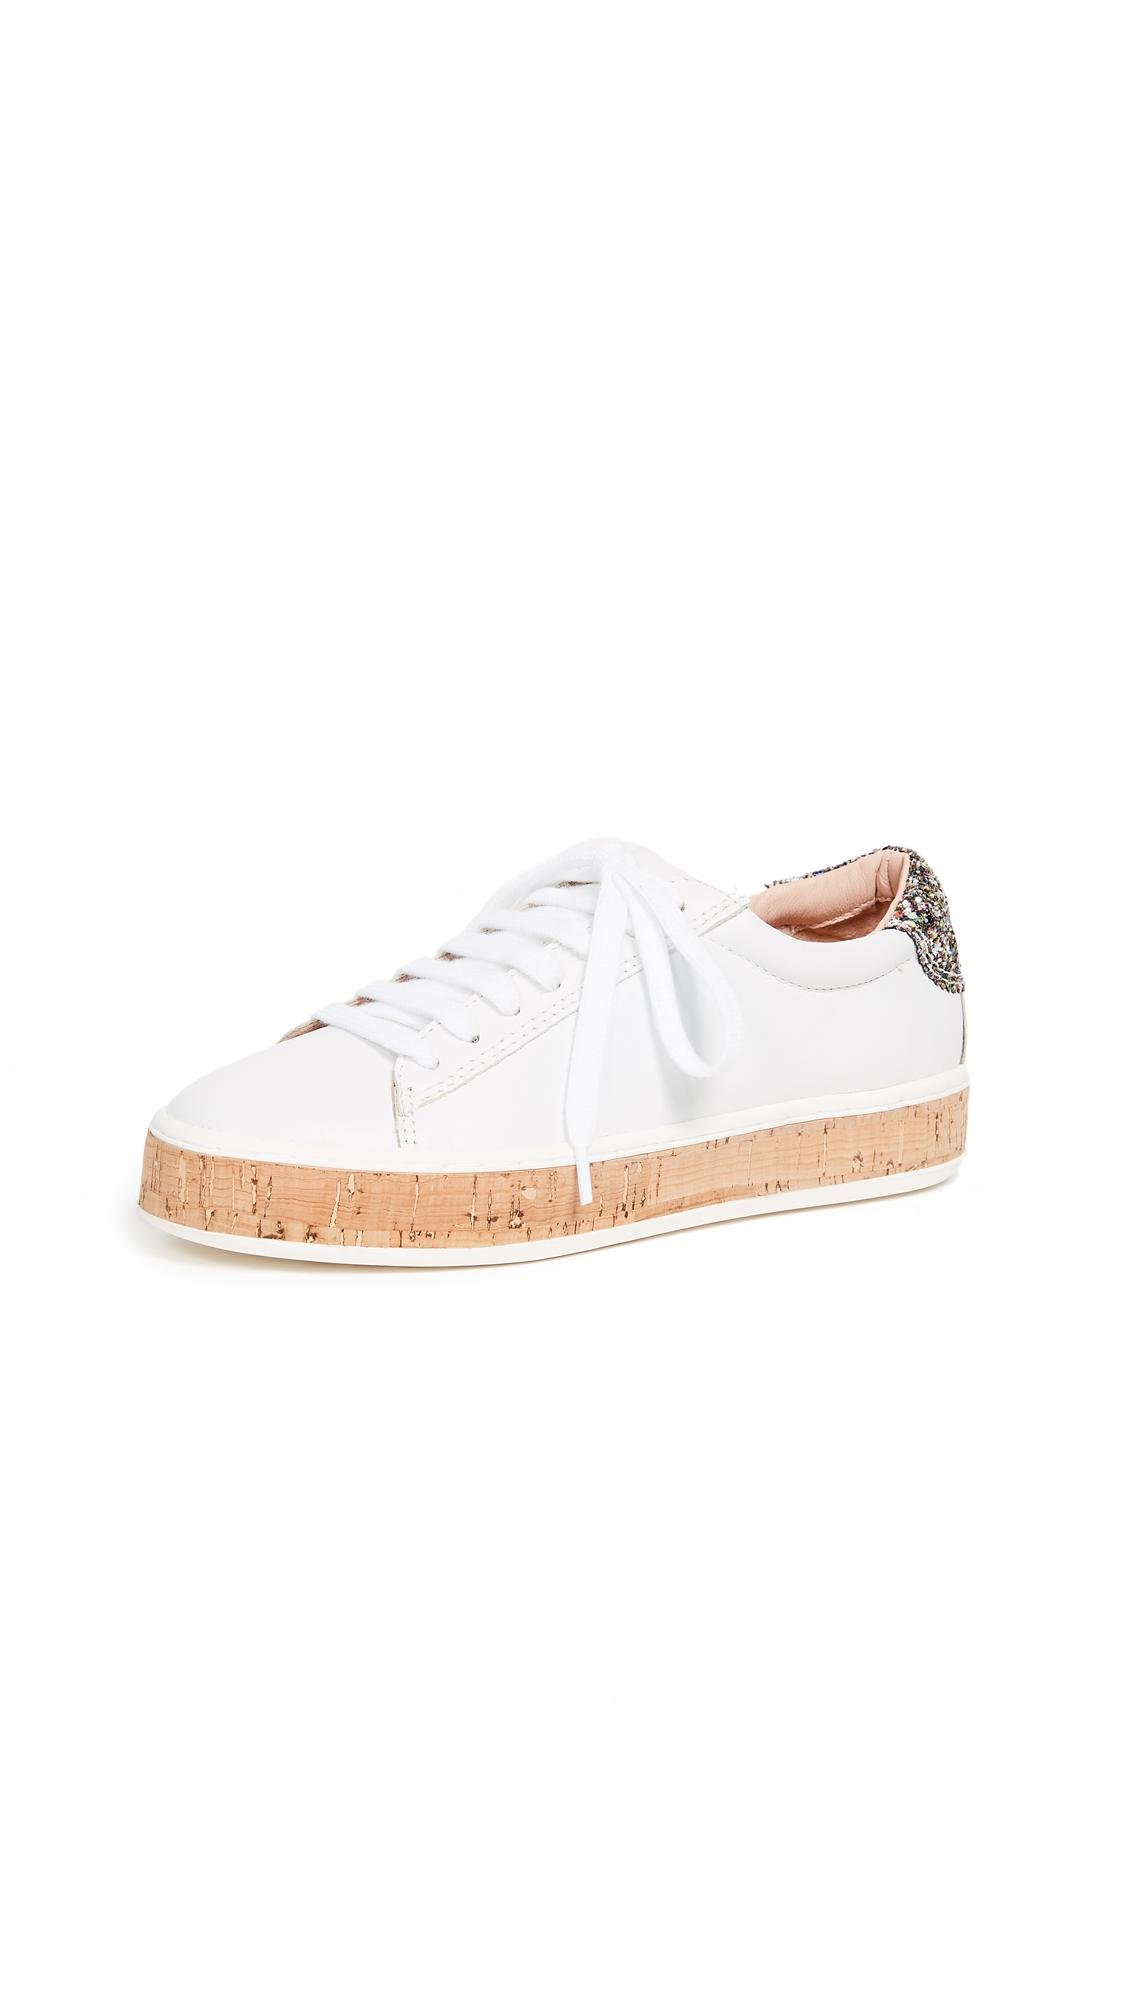 fbcc581796b6 Lyst - Kate Spade Amy Espadrille Sneakers in White